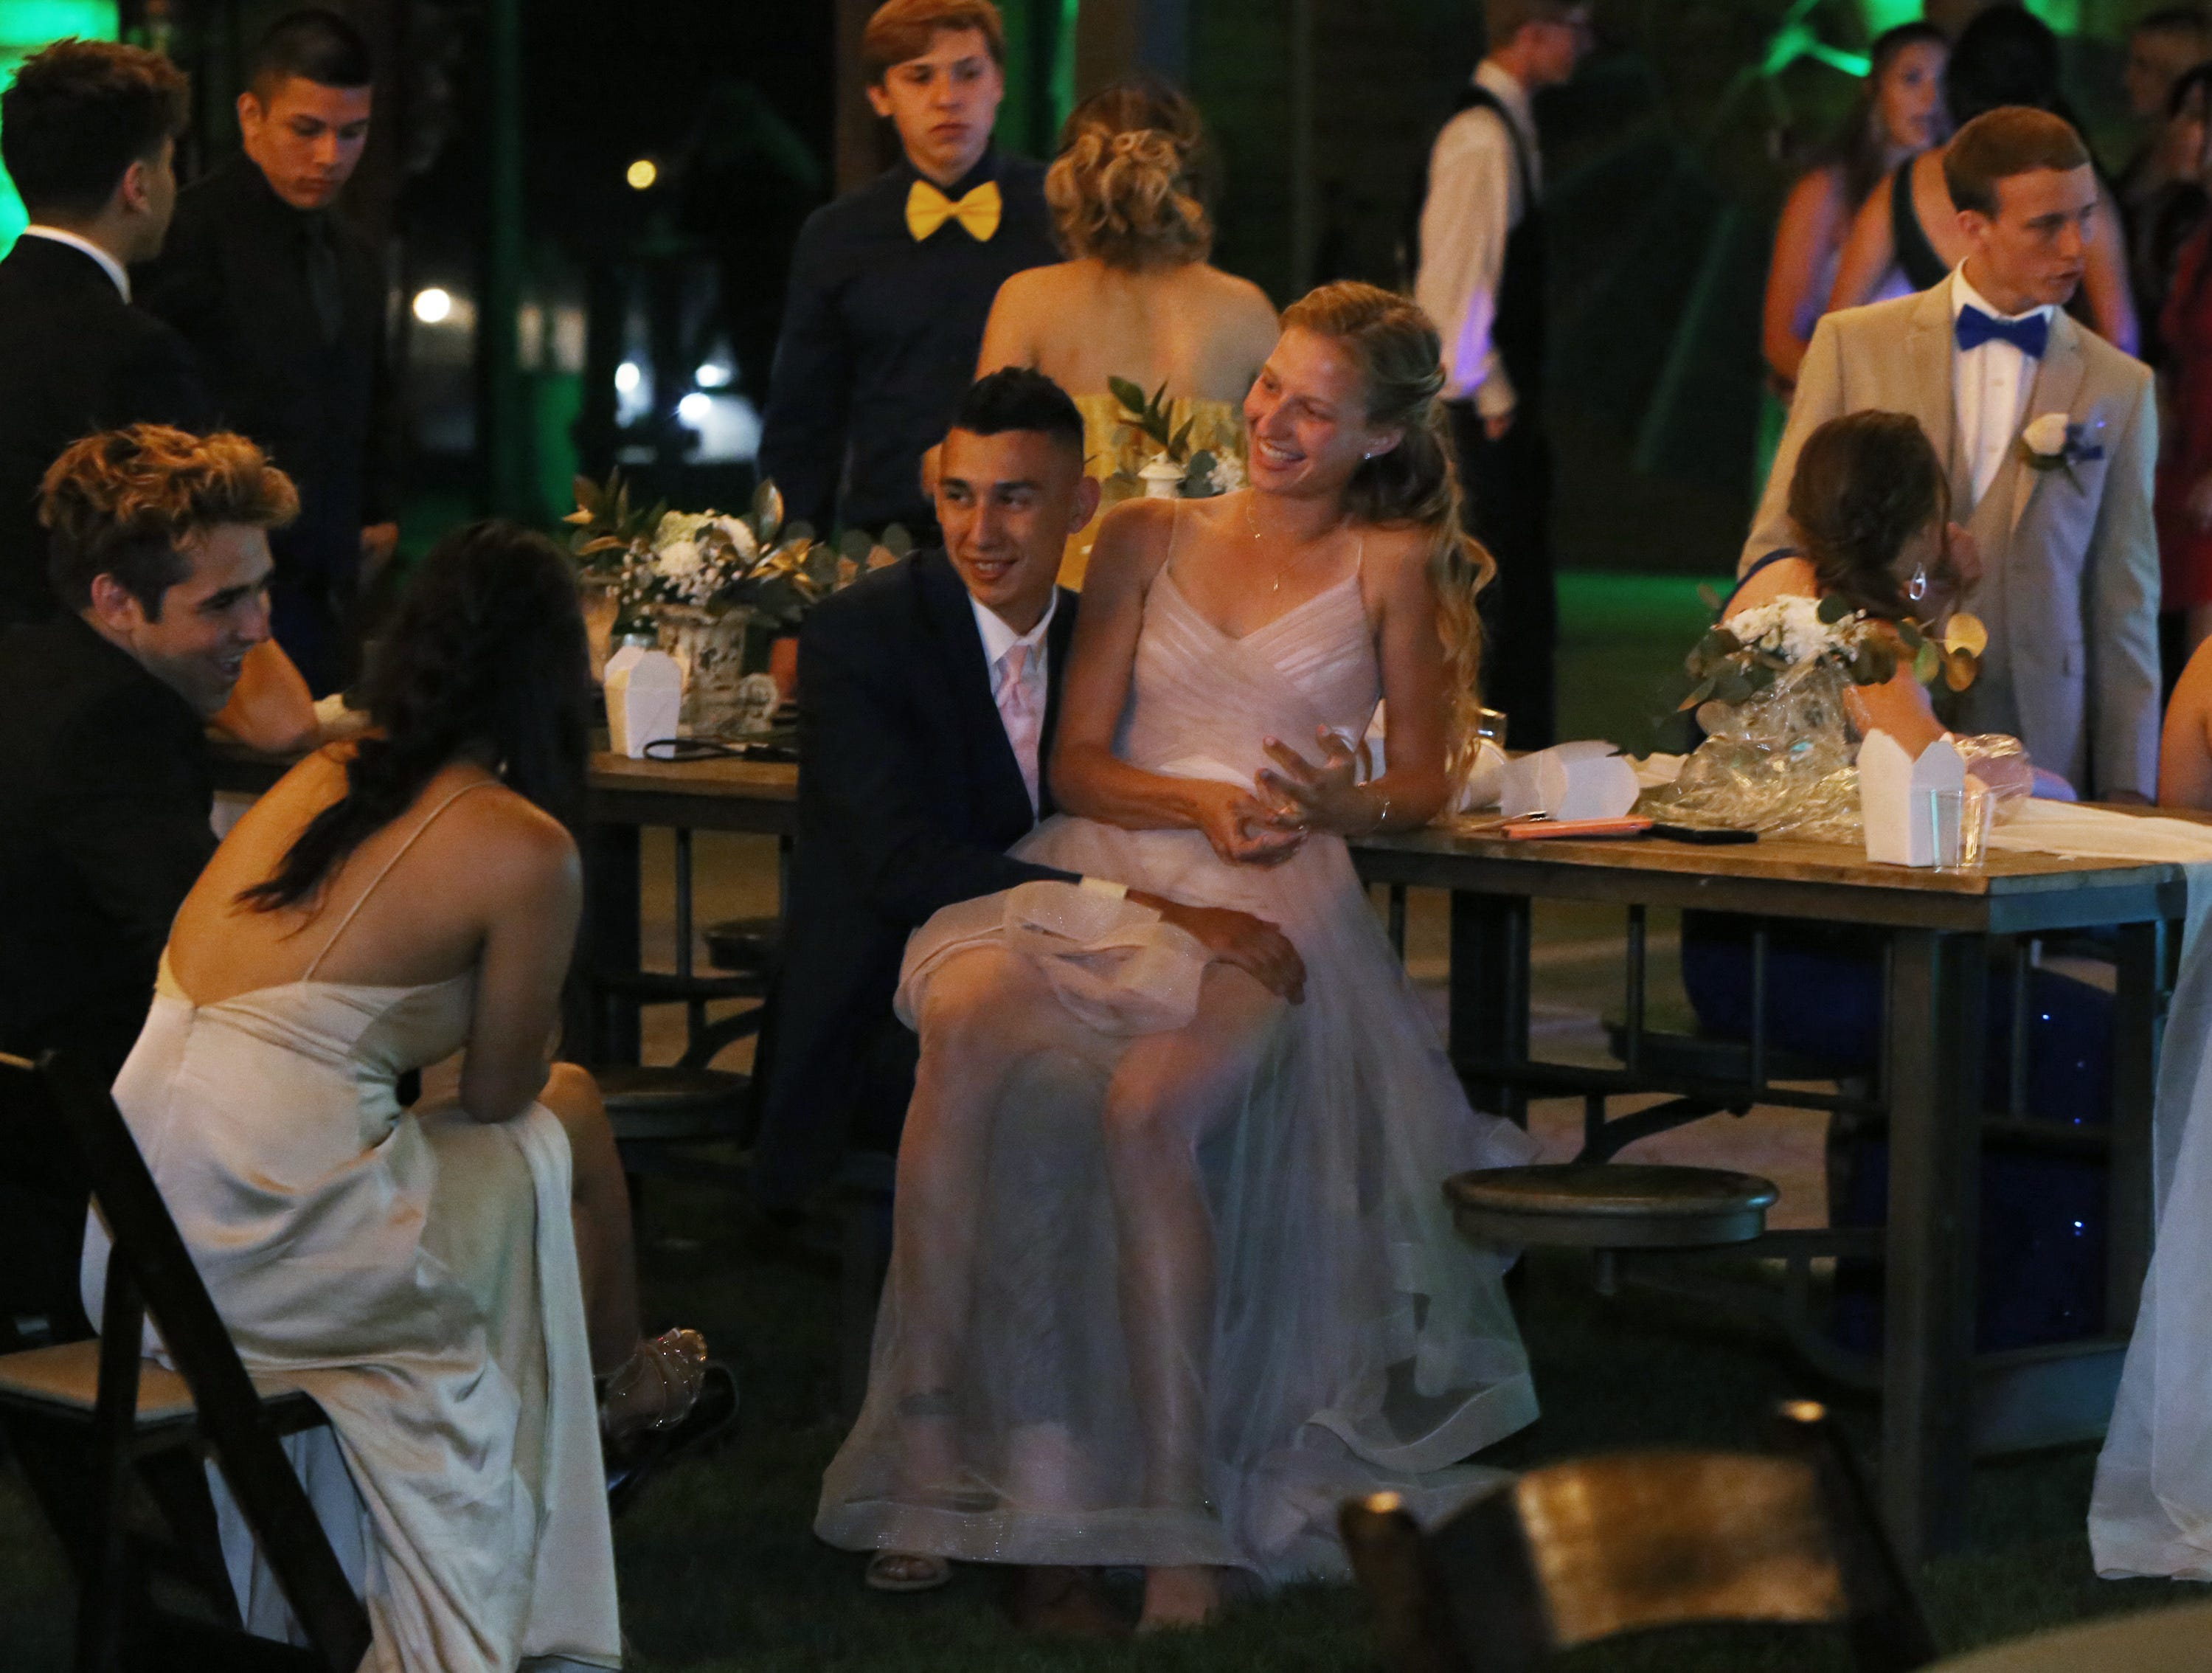 Jaykob Acosta and Julia Nelson chat with friends at the Exeter Union High School prom Saturday, May 4, 2019 in Woodlake, Calif.